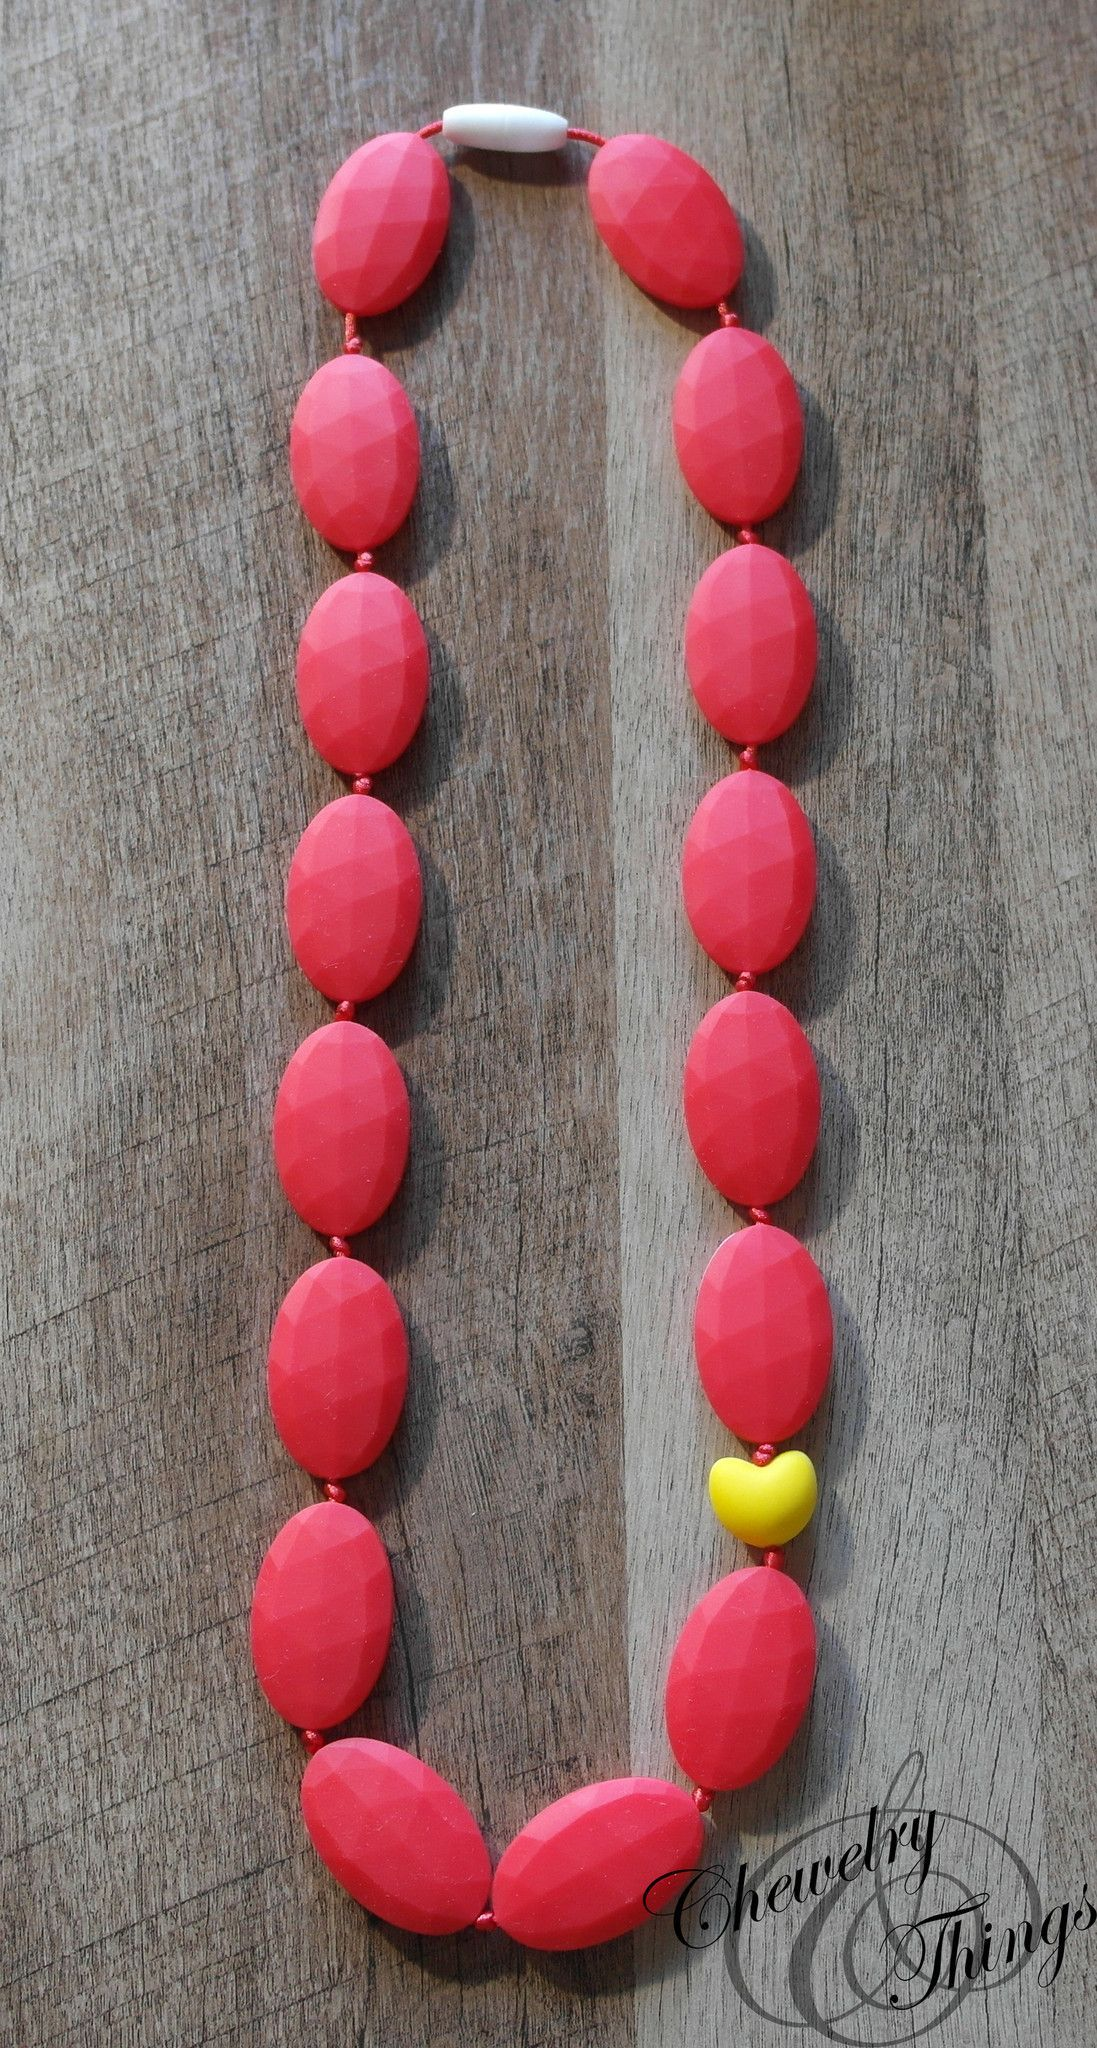 The Red Flats Teething / Nursing Necklace